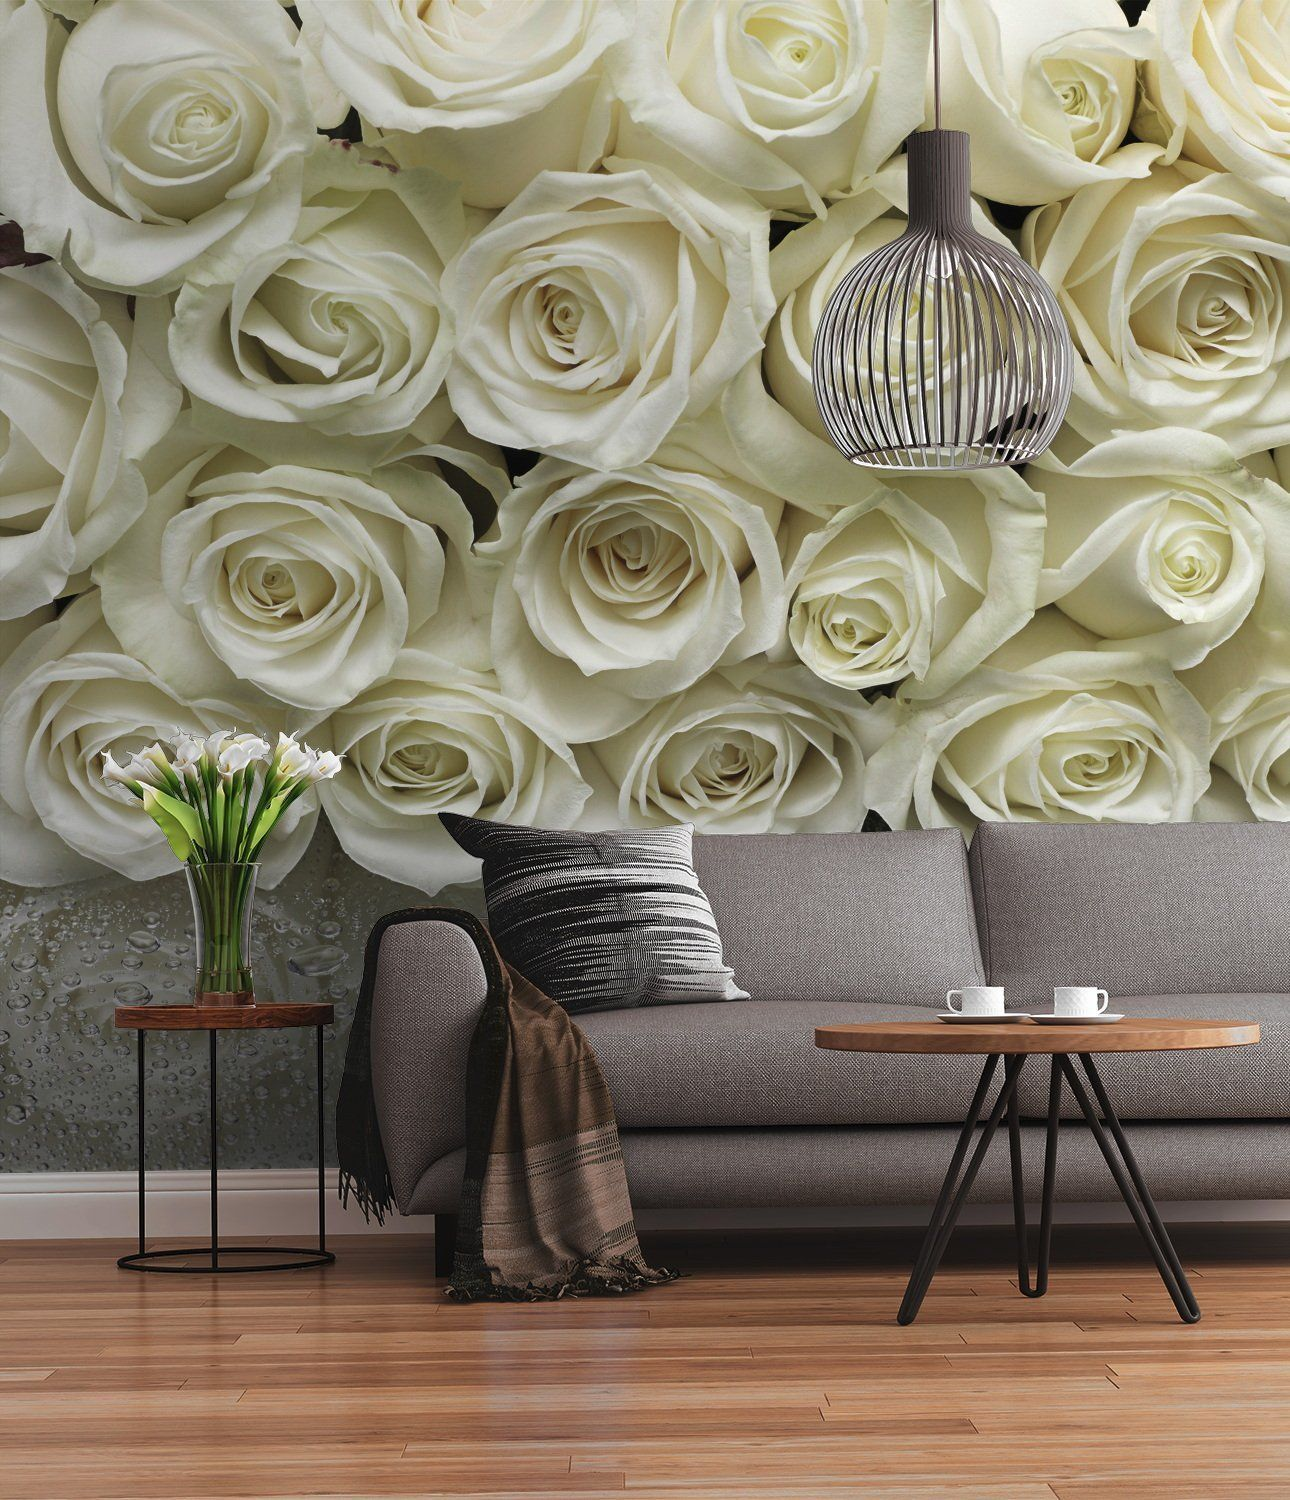 Wallpaper Wall Murals Uk White Roses Wall Mural For Wall